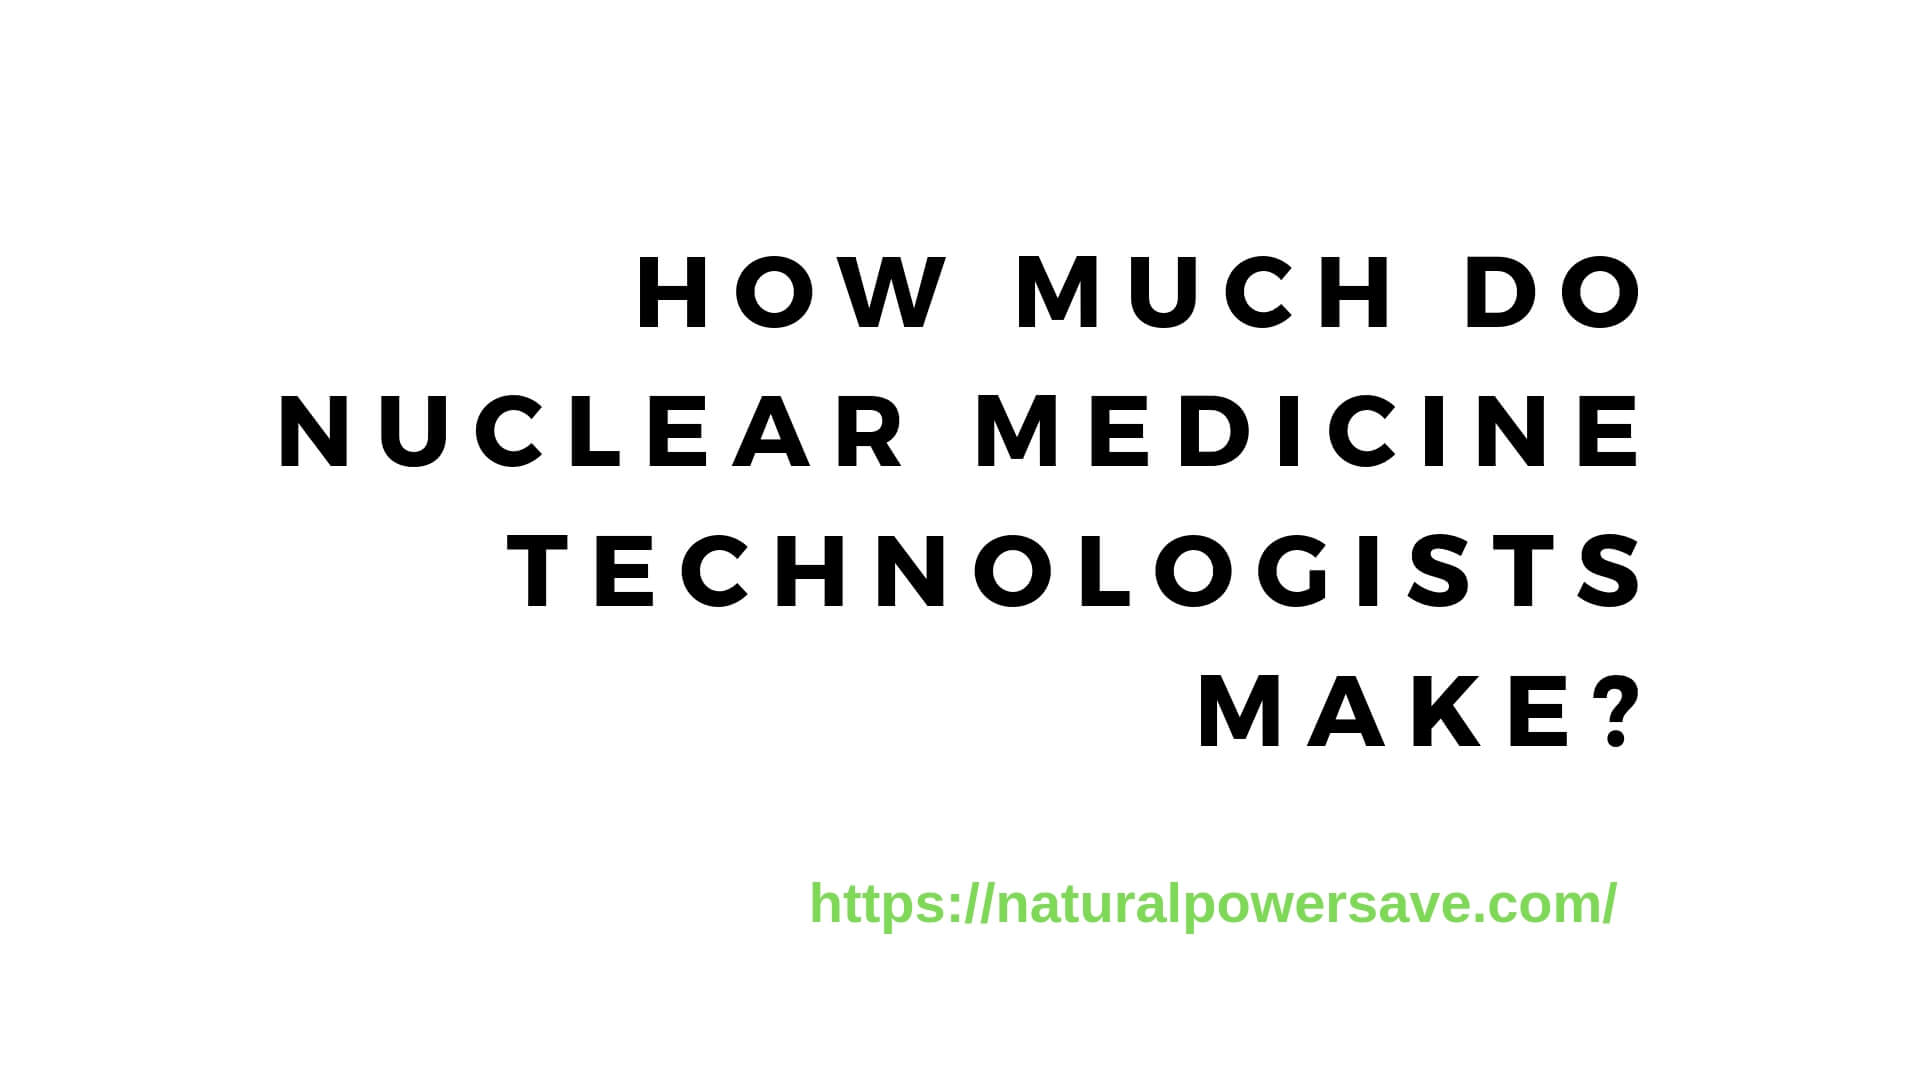 How much do Nuclear Medicine Technologists Make?